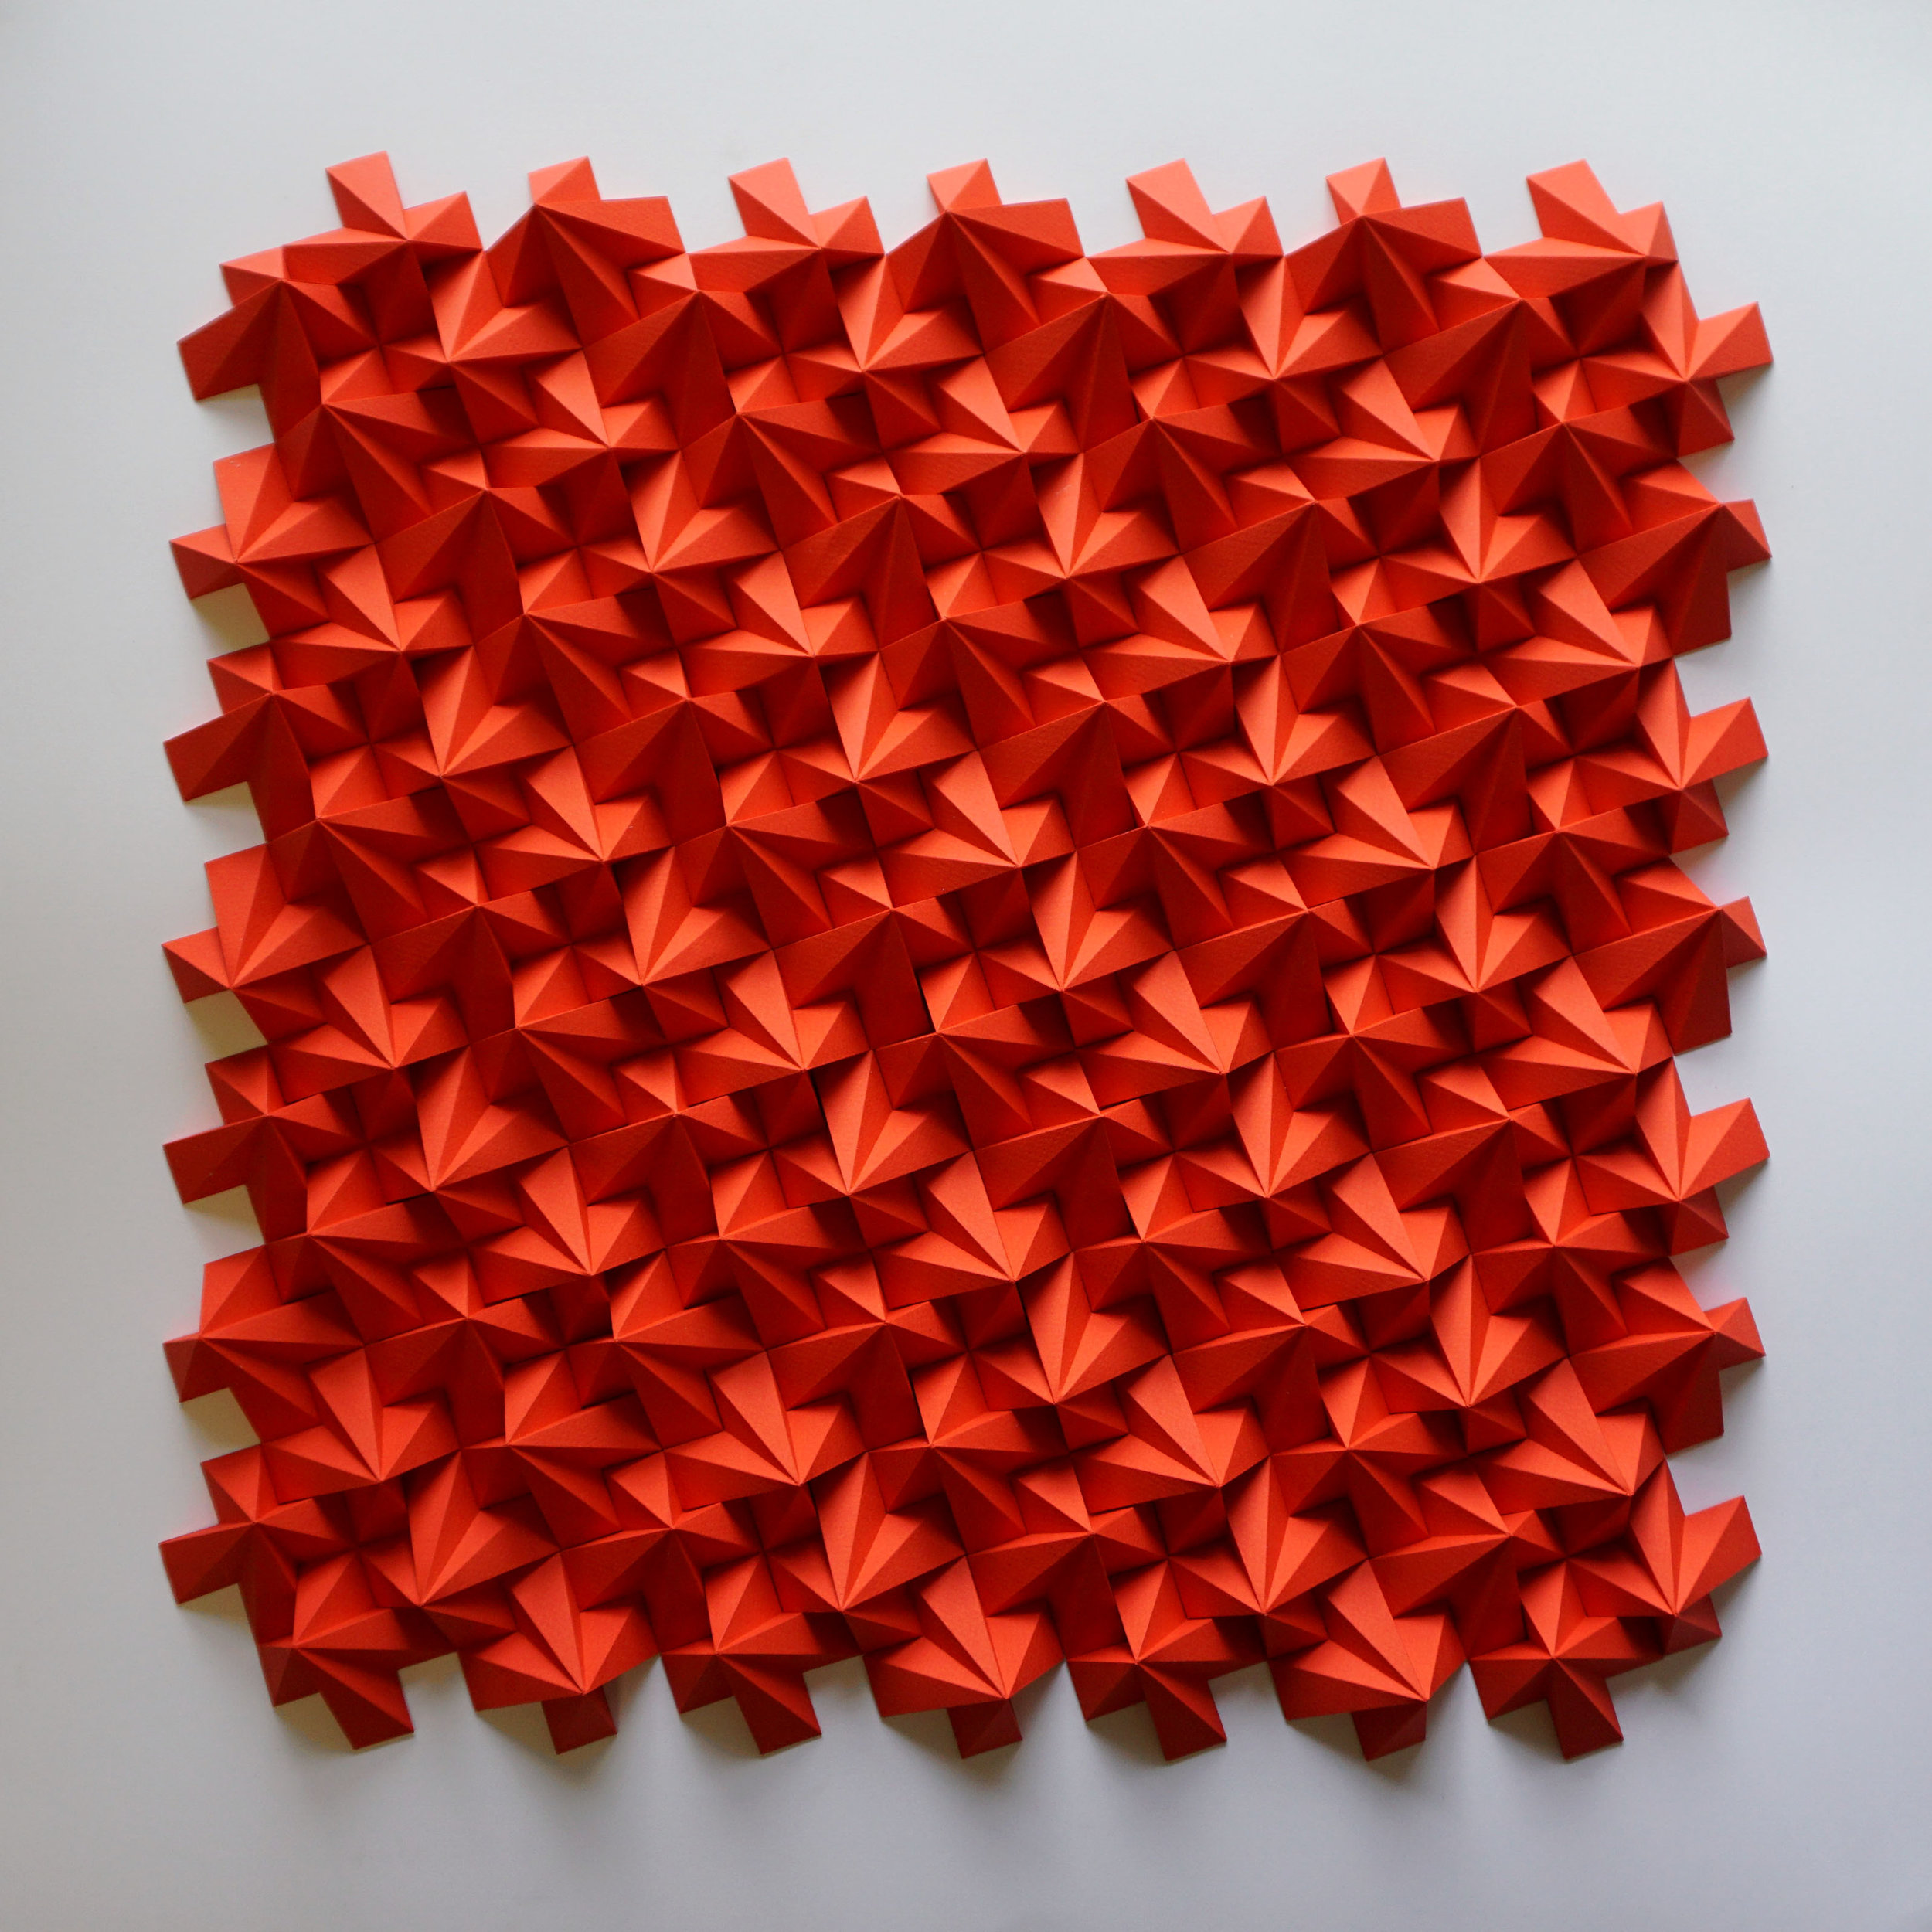 """IEFBR14,  Cut and Folded Paper, 26""""H x 26""""W x 1"""""""